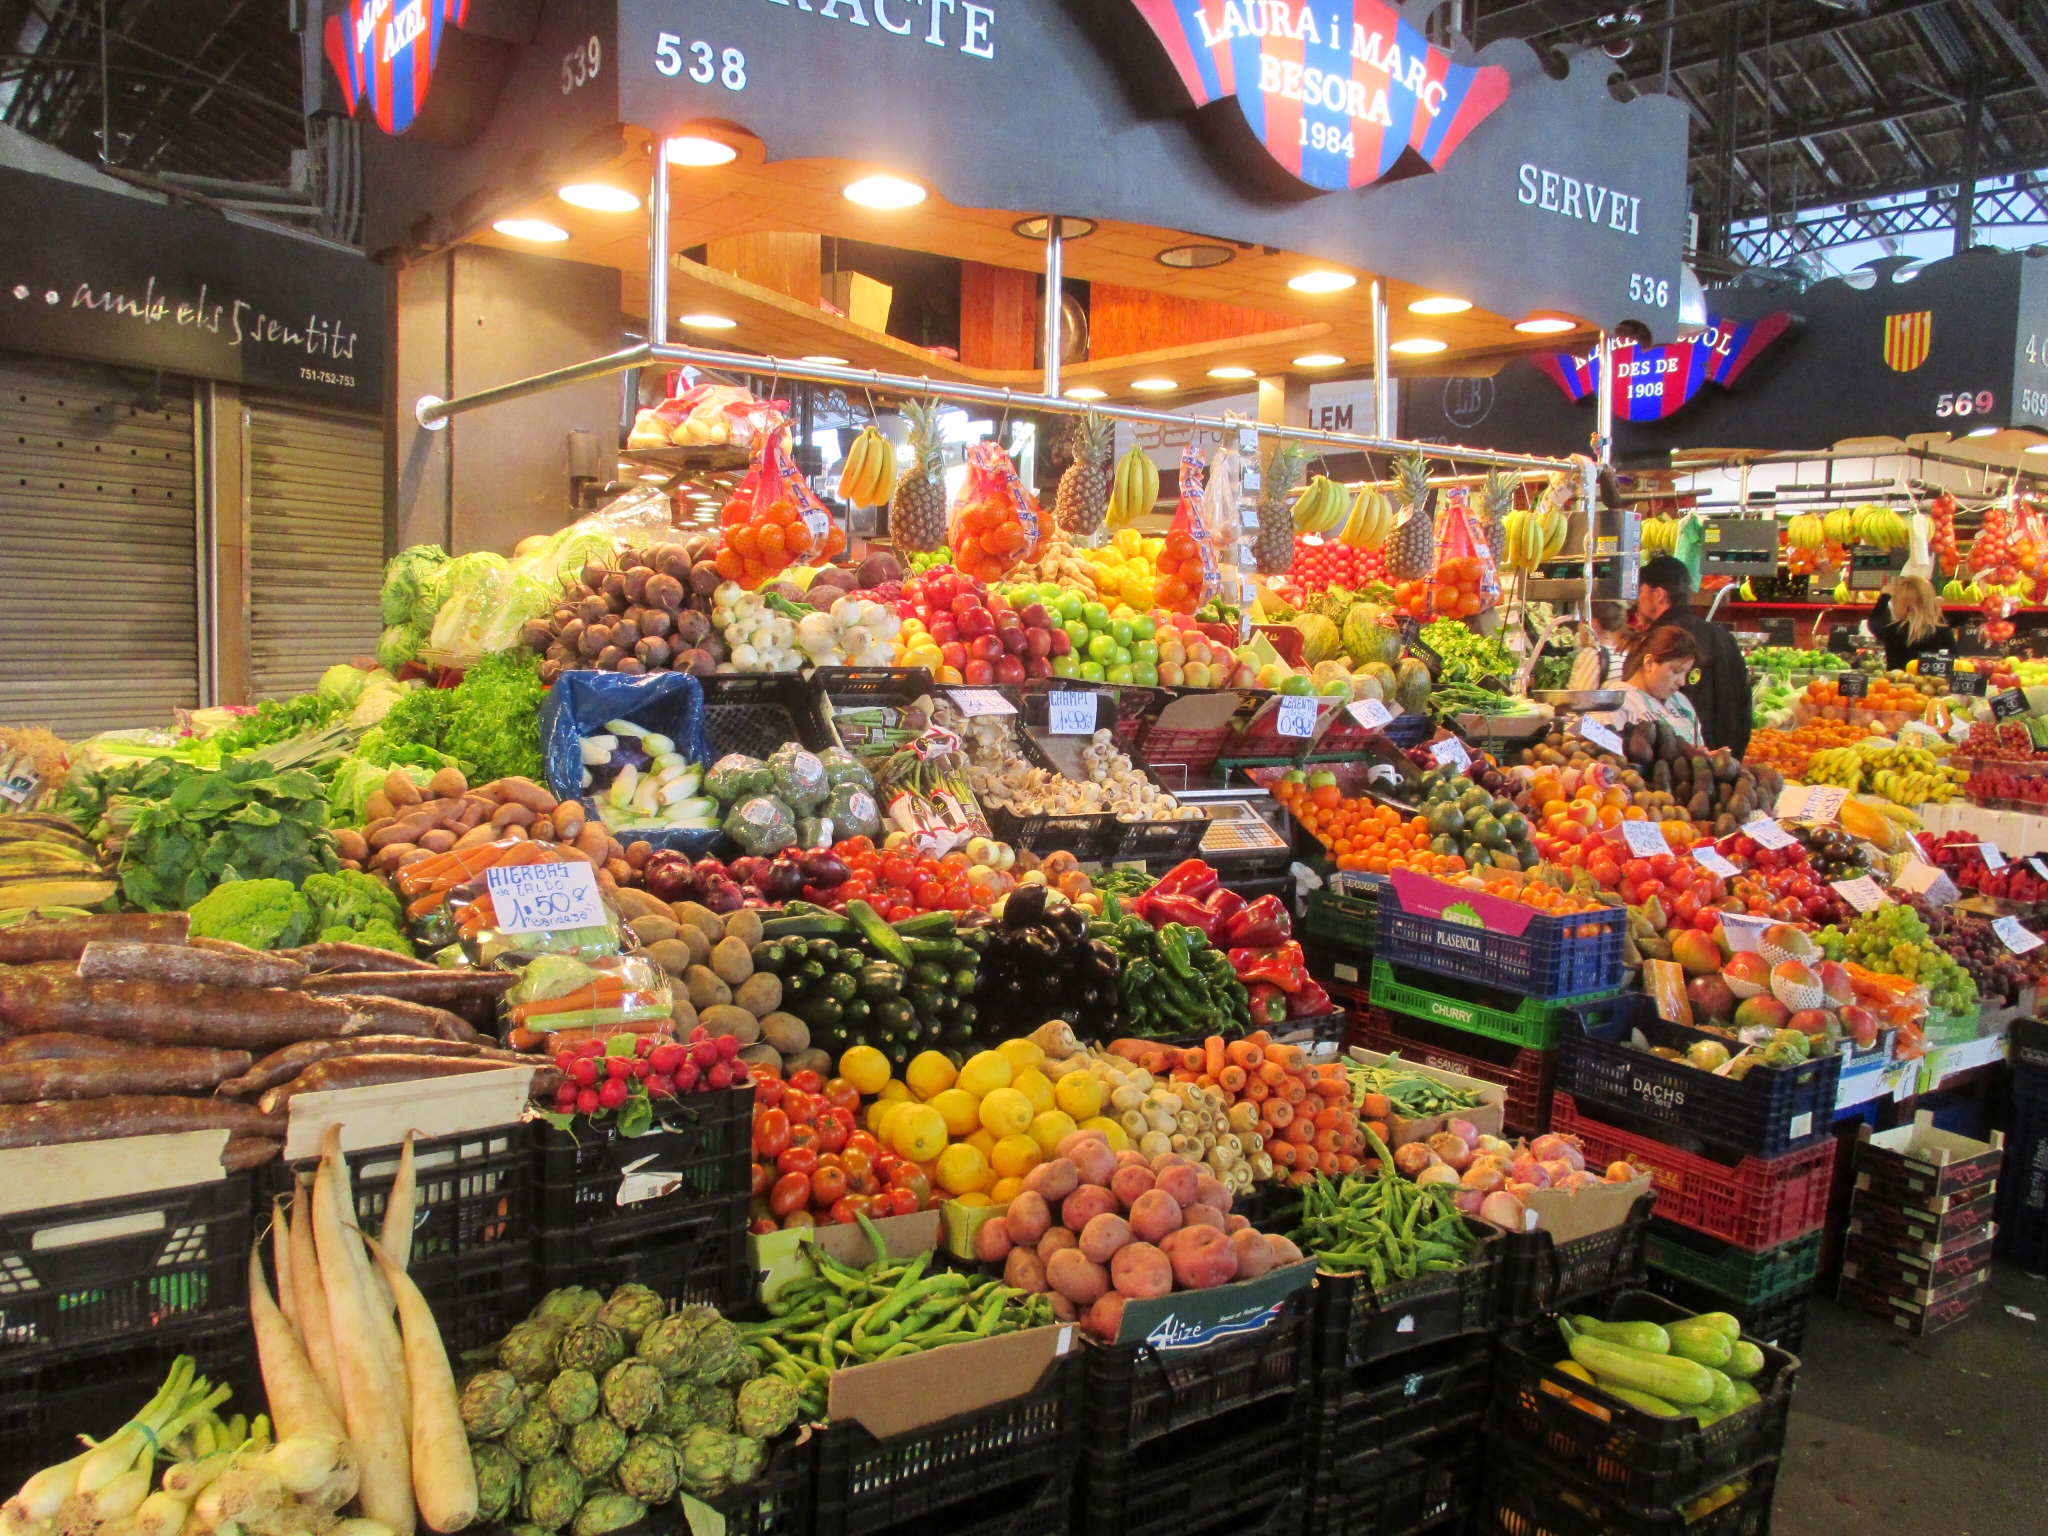 Vegetable stand at Barcelona market